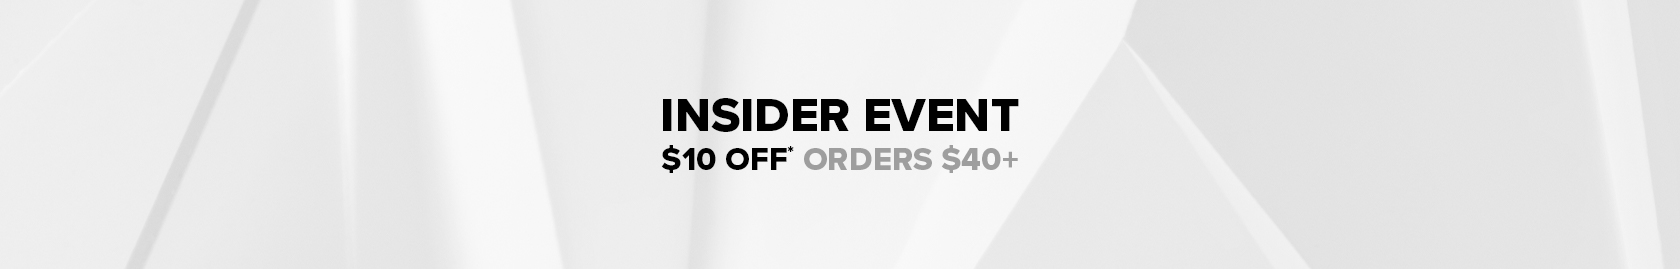 Insider Event - $10 off $40 orders